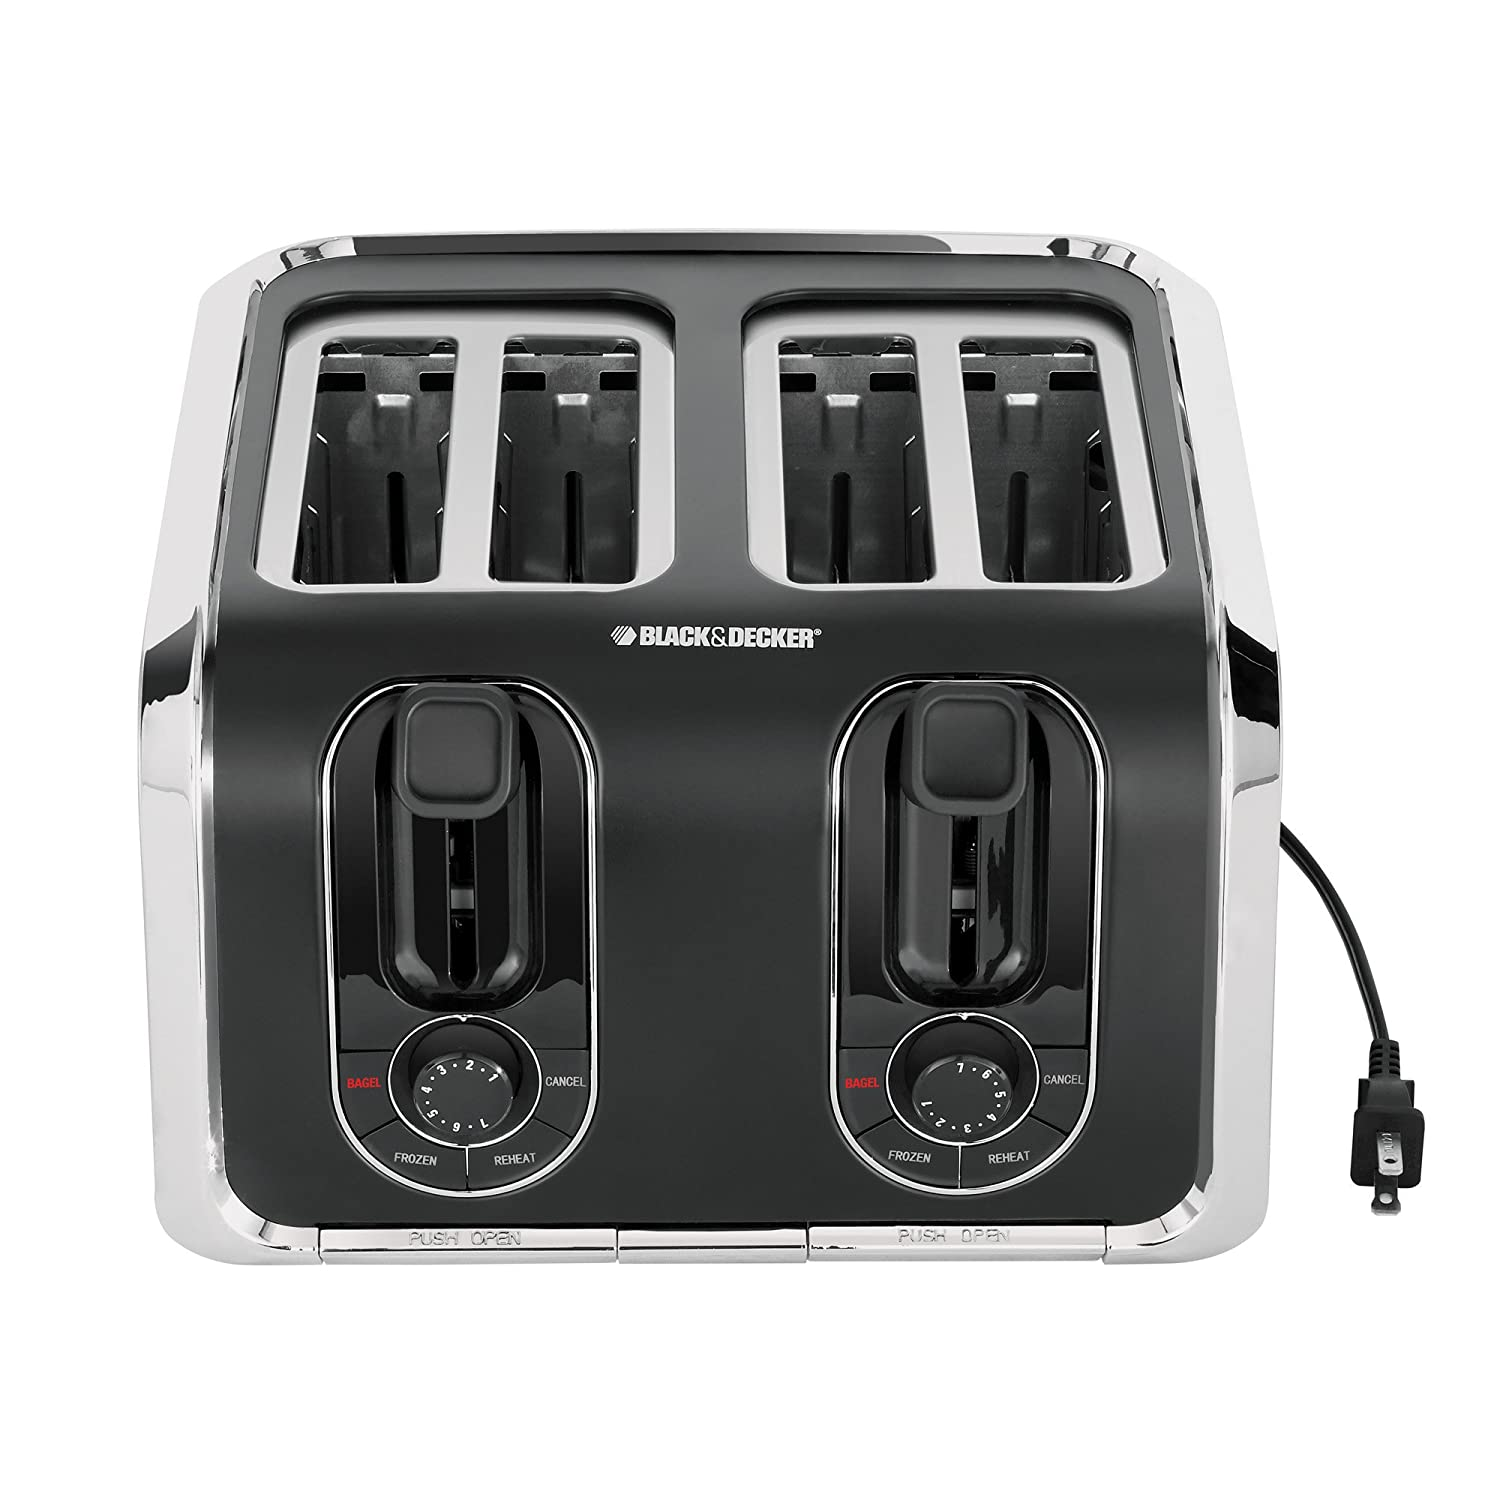 Details about NEW Black and Decker TR1400SB 4-Slice Stainless-Stee l ...